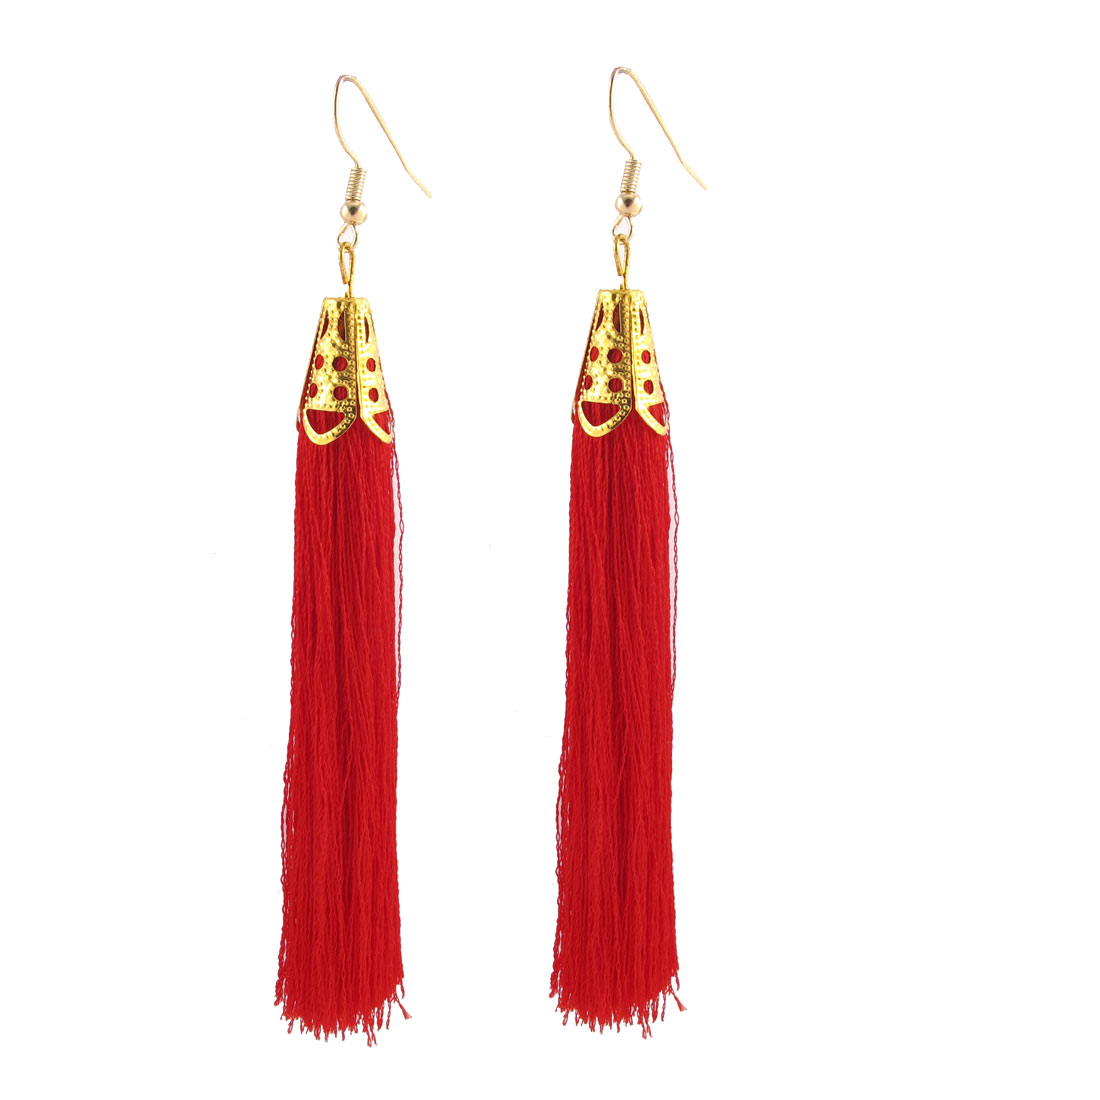 Fish Hook Style Charm Tassel Eardrop Dangle Earrings 2 Pcs Red